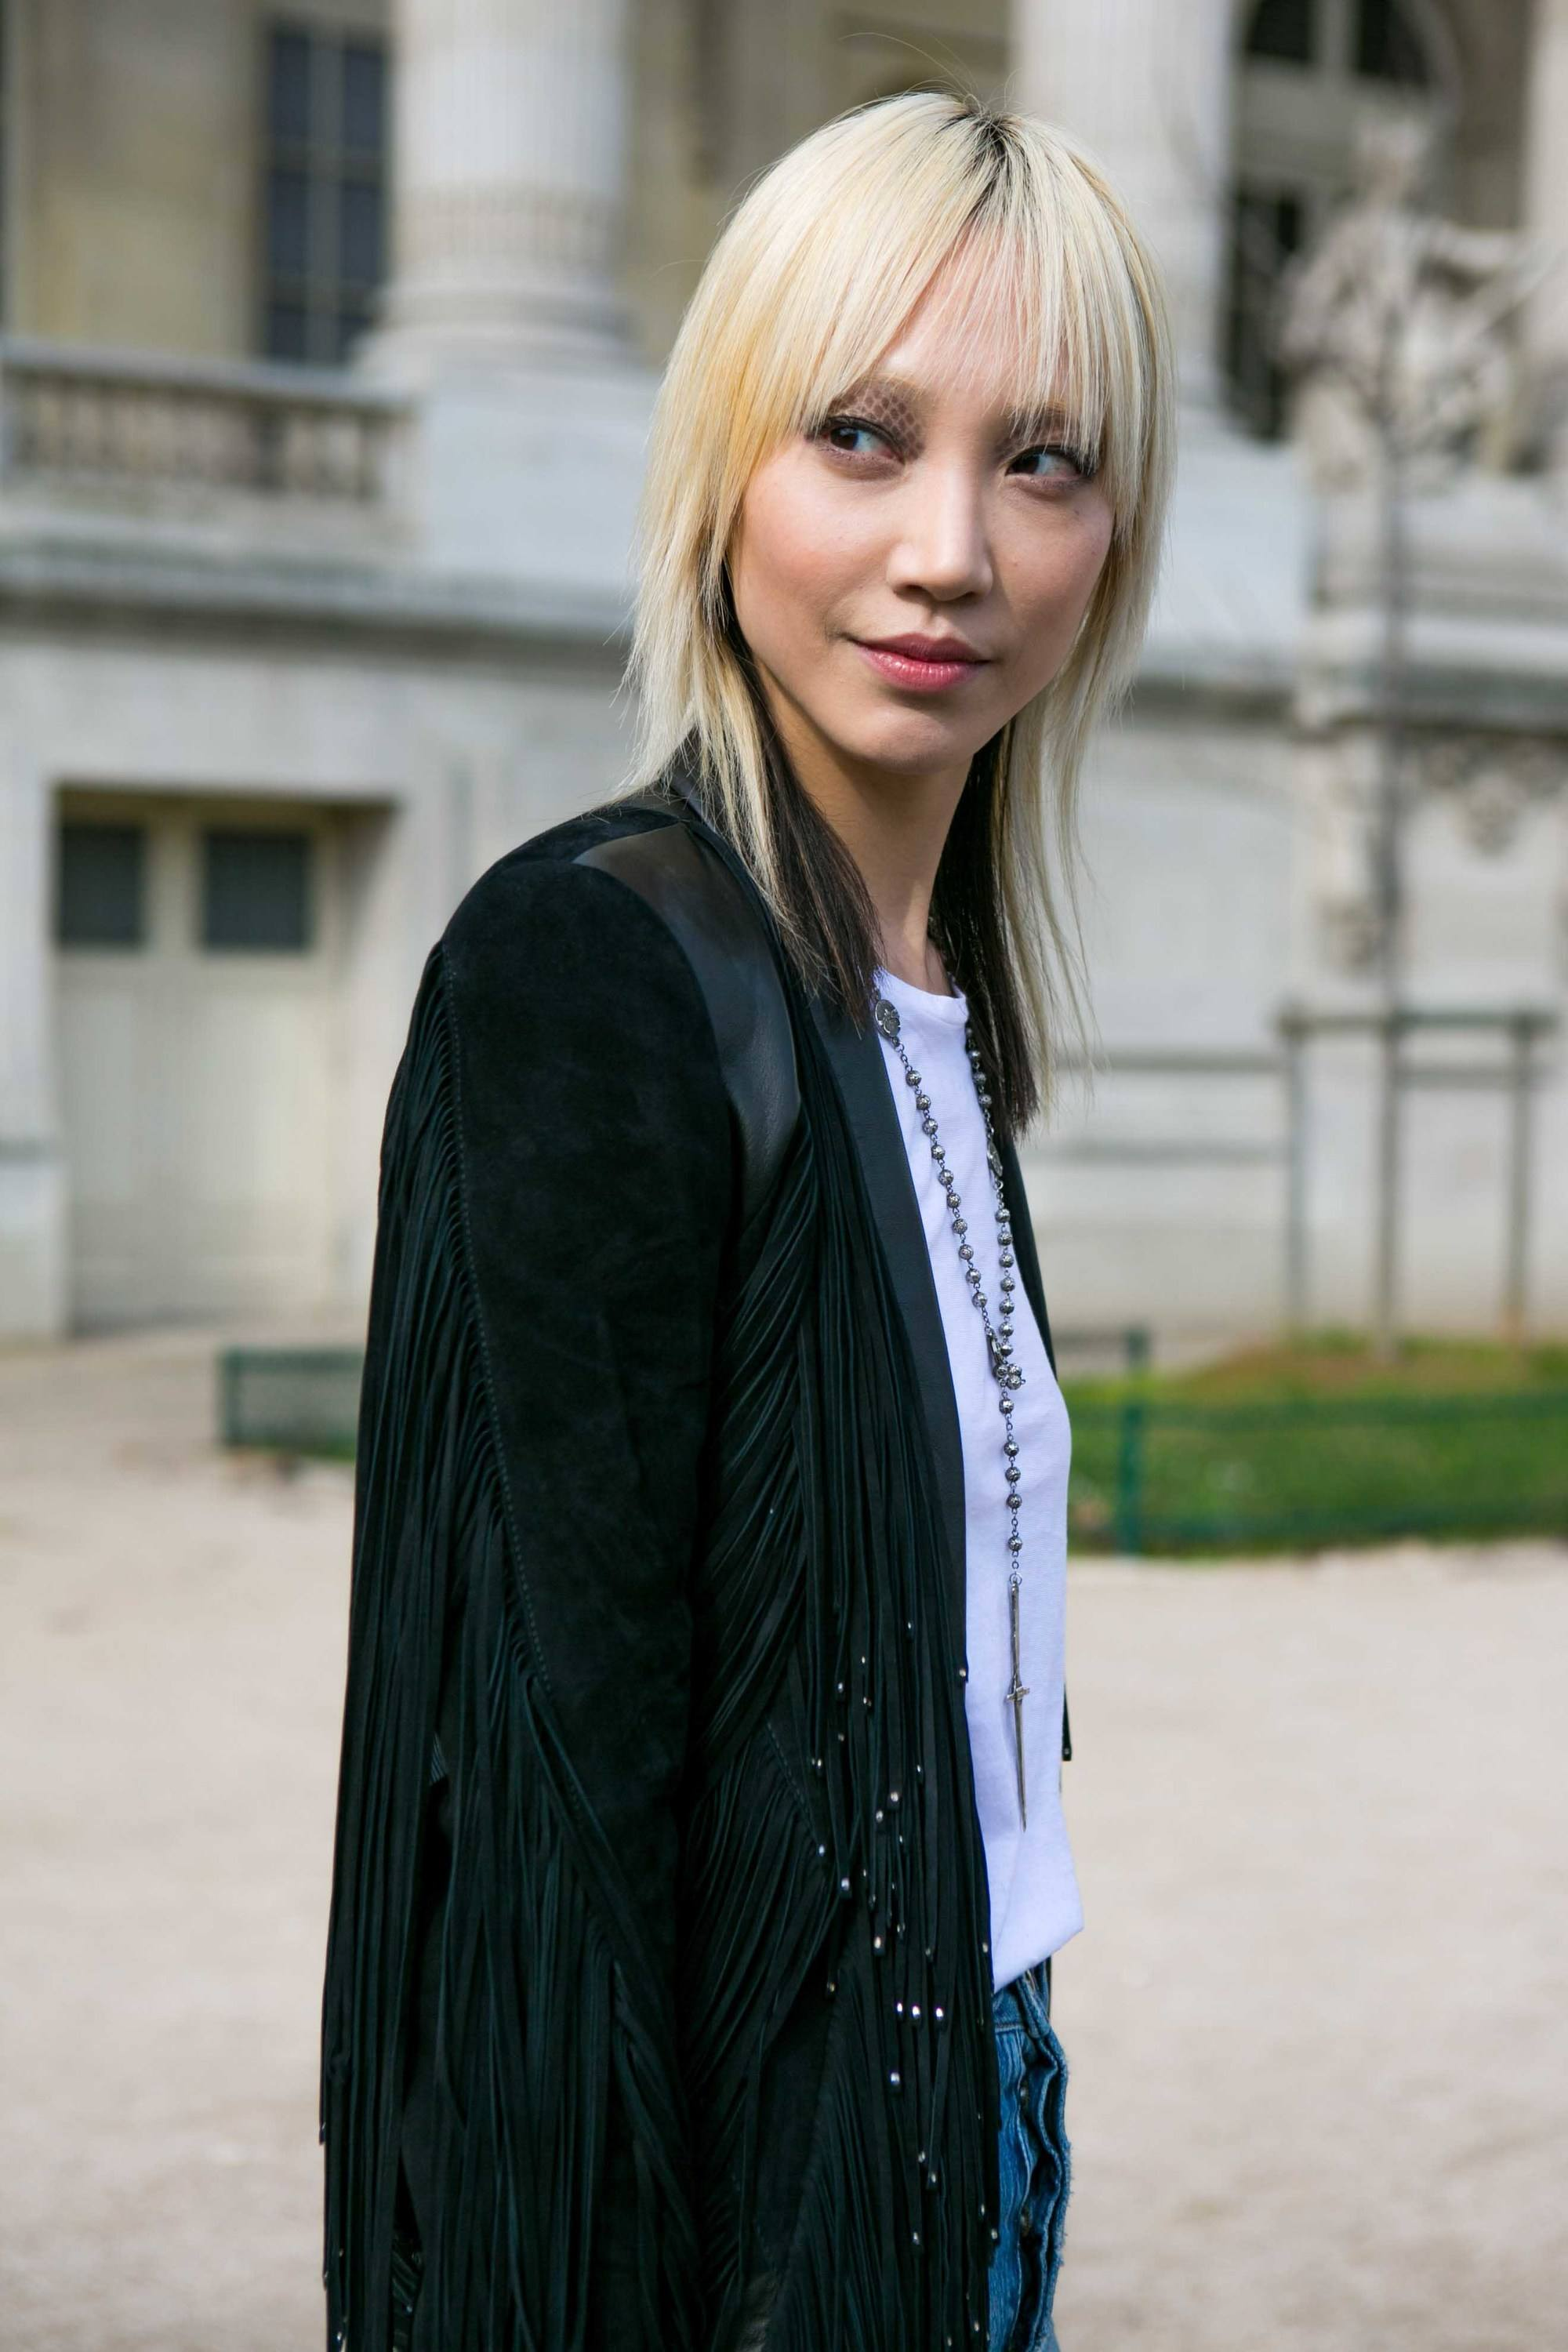 Blonde Asian woman standing outside hair falling out